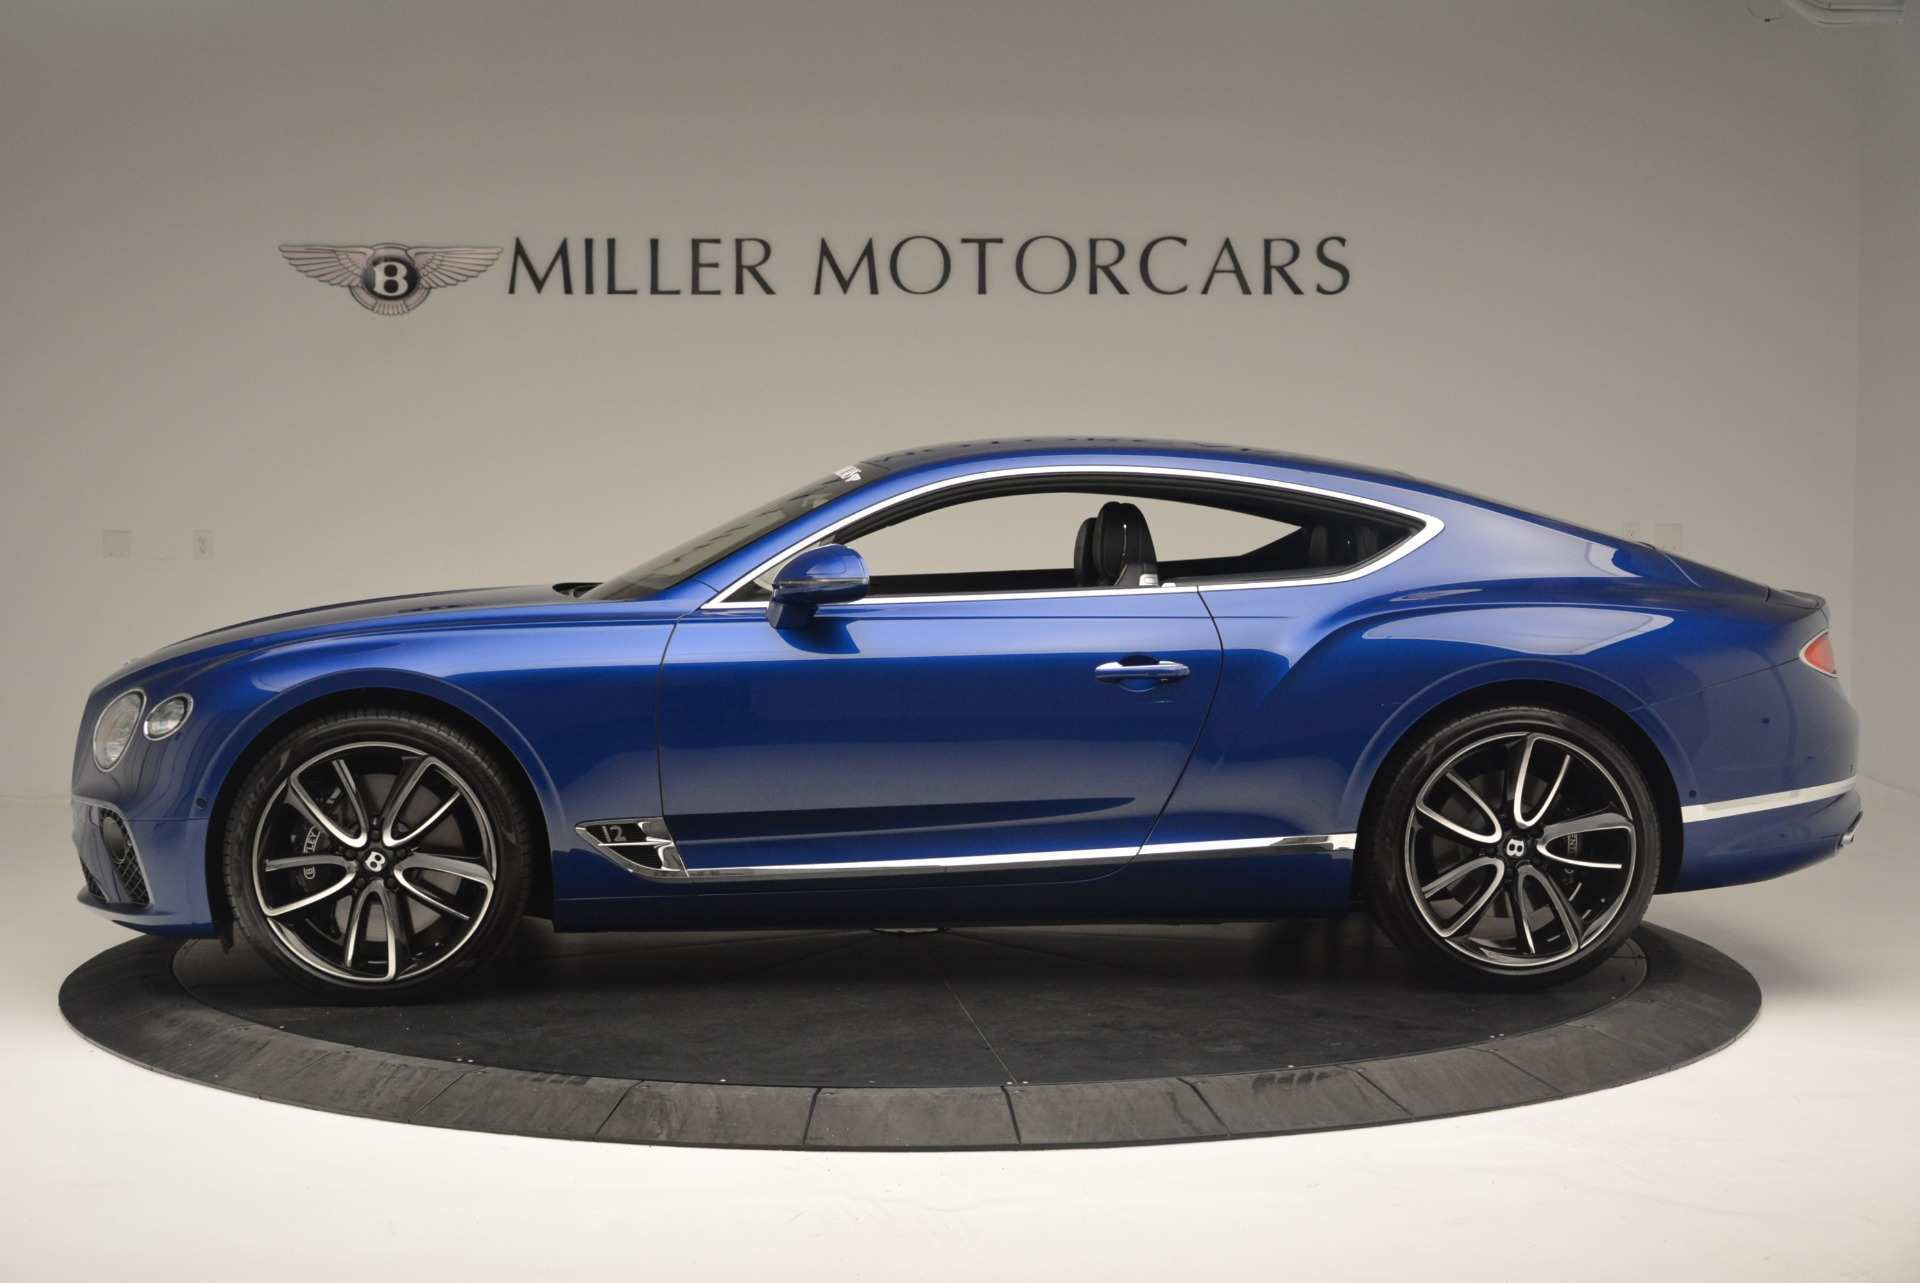 76 Concept of 2019 Bentley Continental Gt Release Date Specs and Review by 2019 Bentley Continental Gt Release Date